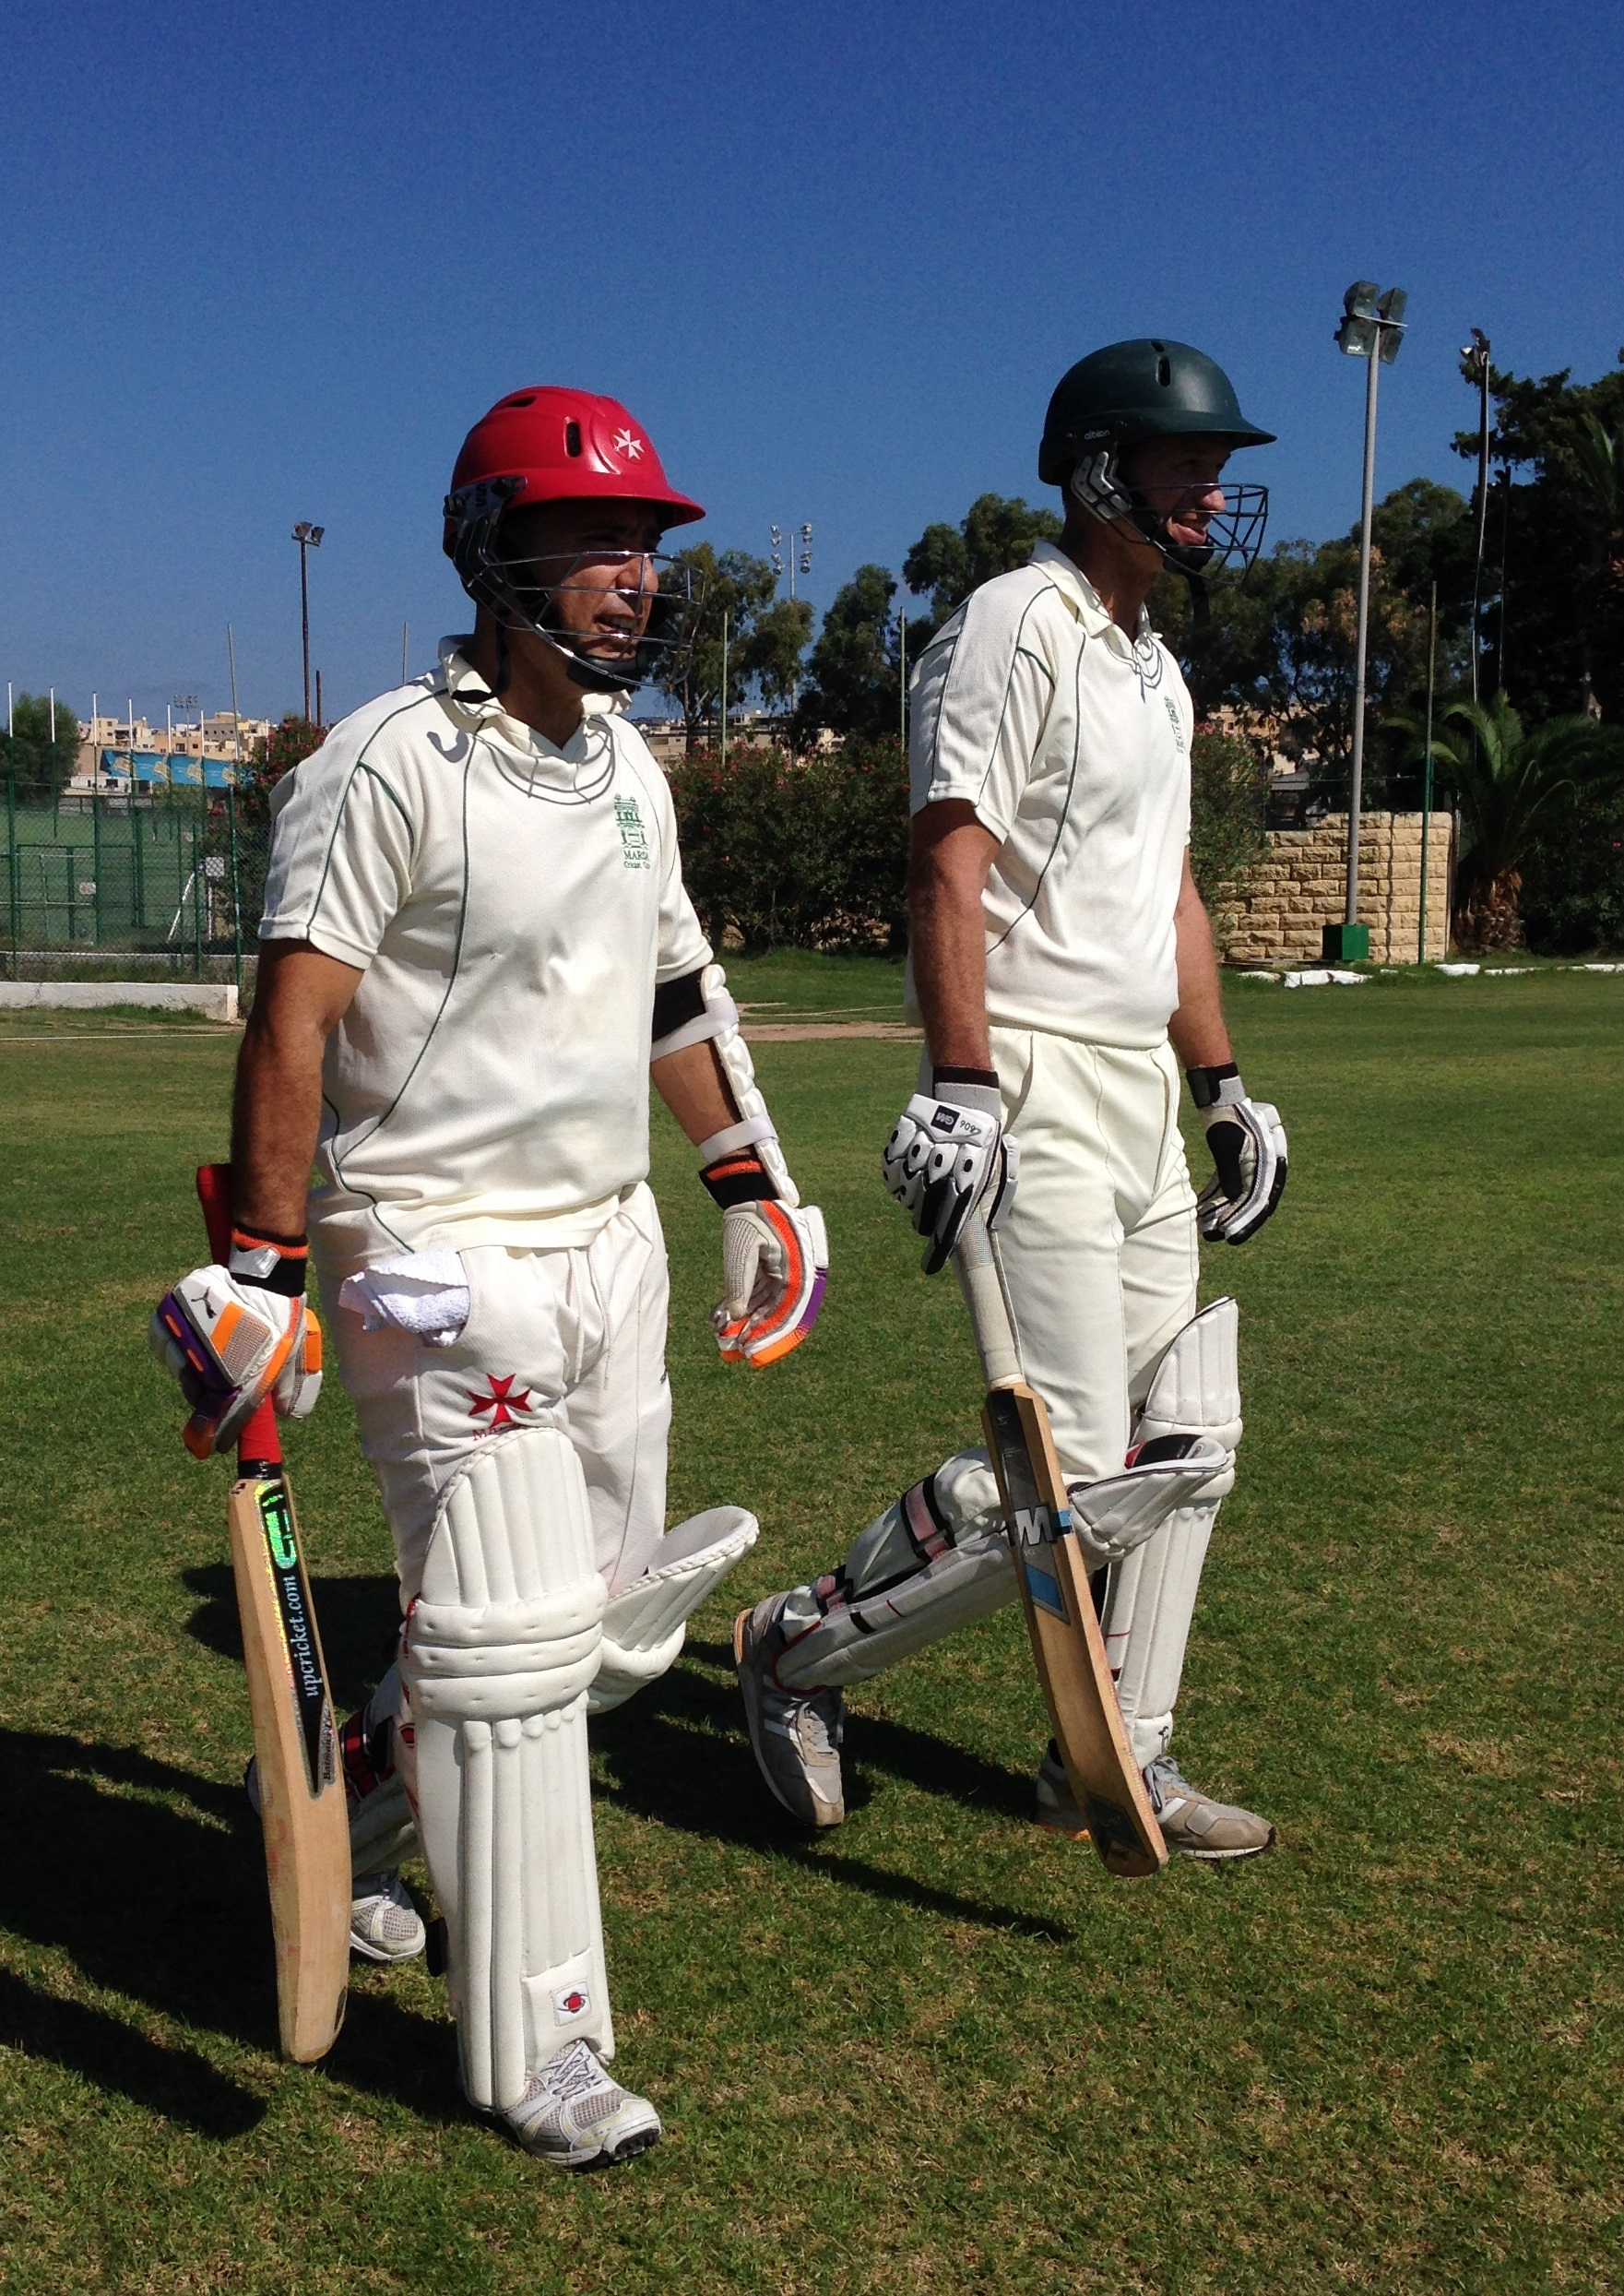 Openers M Sacco and M Crabbe - vs Tongham CC